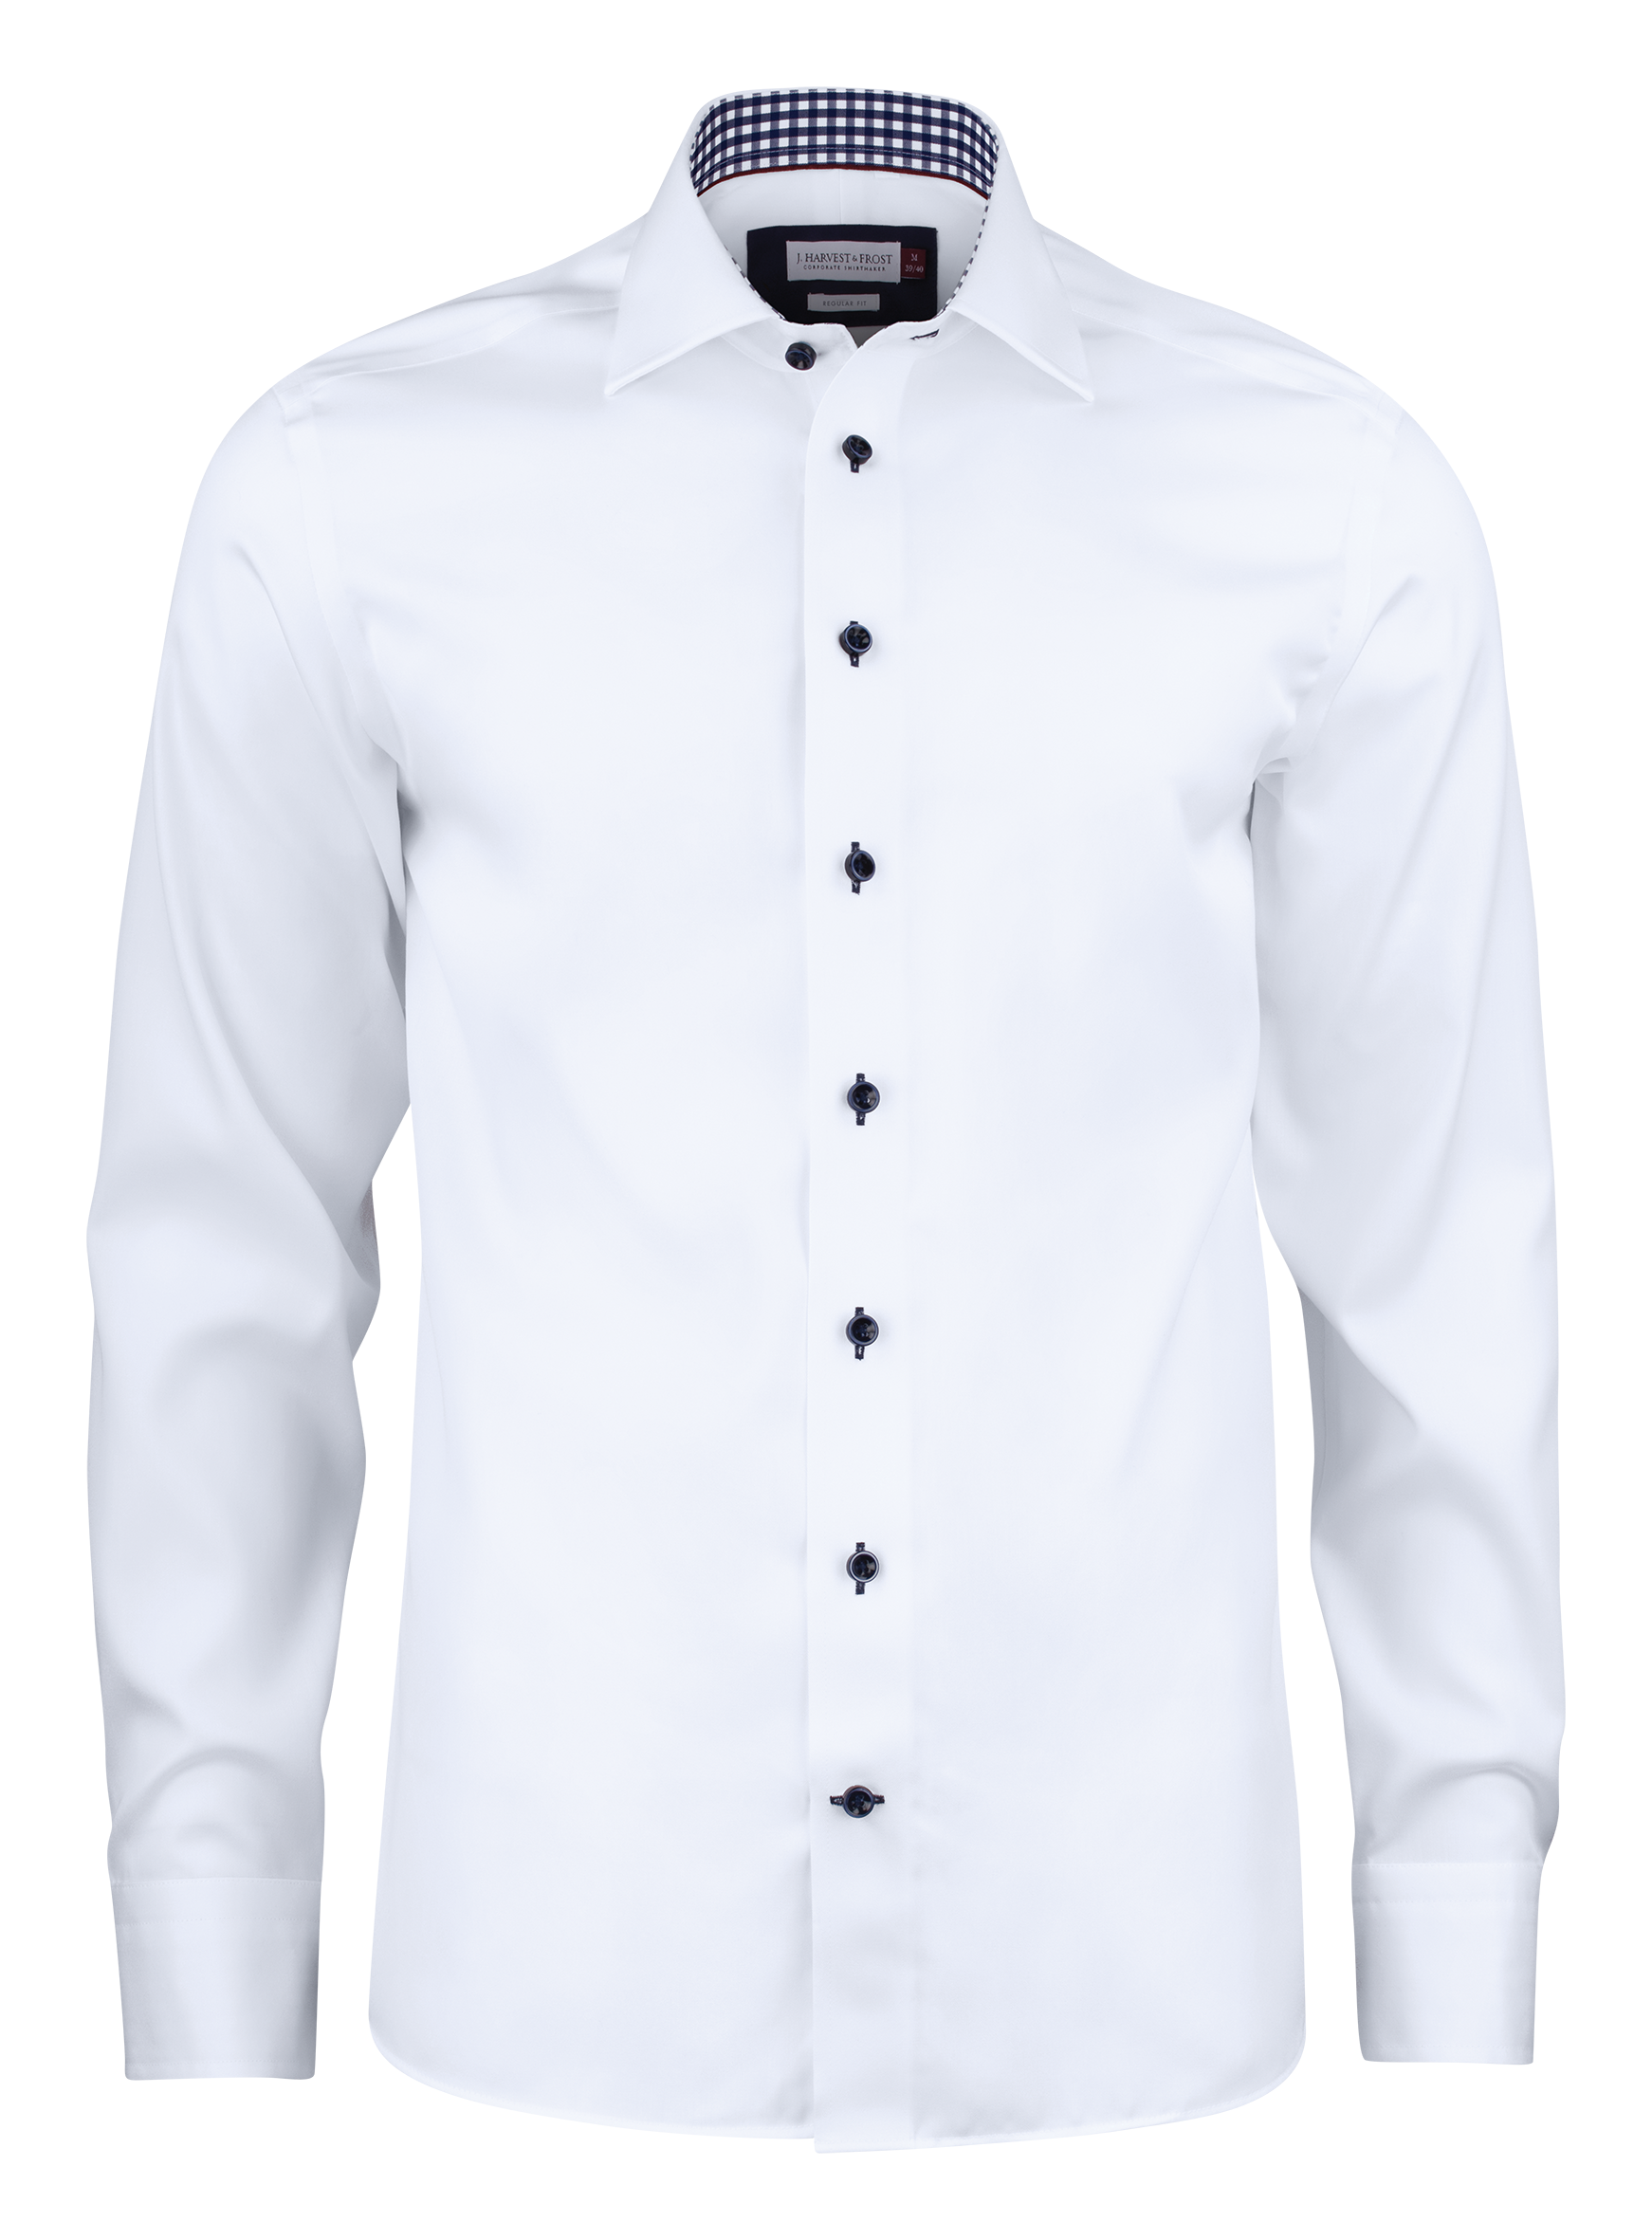 Mens' Red Bow 20 Shirt in White with Navy Contrast